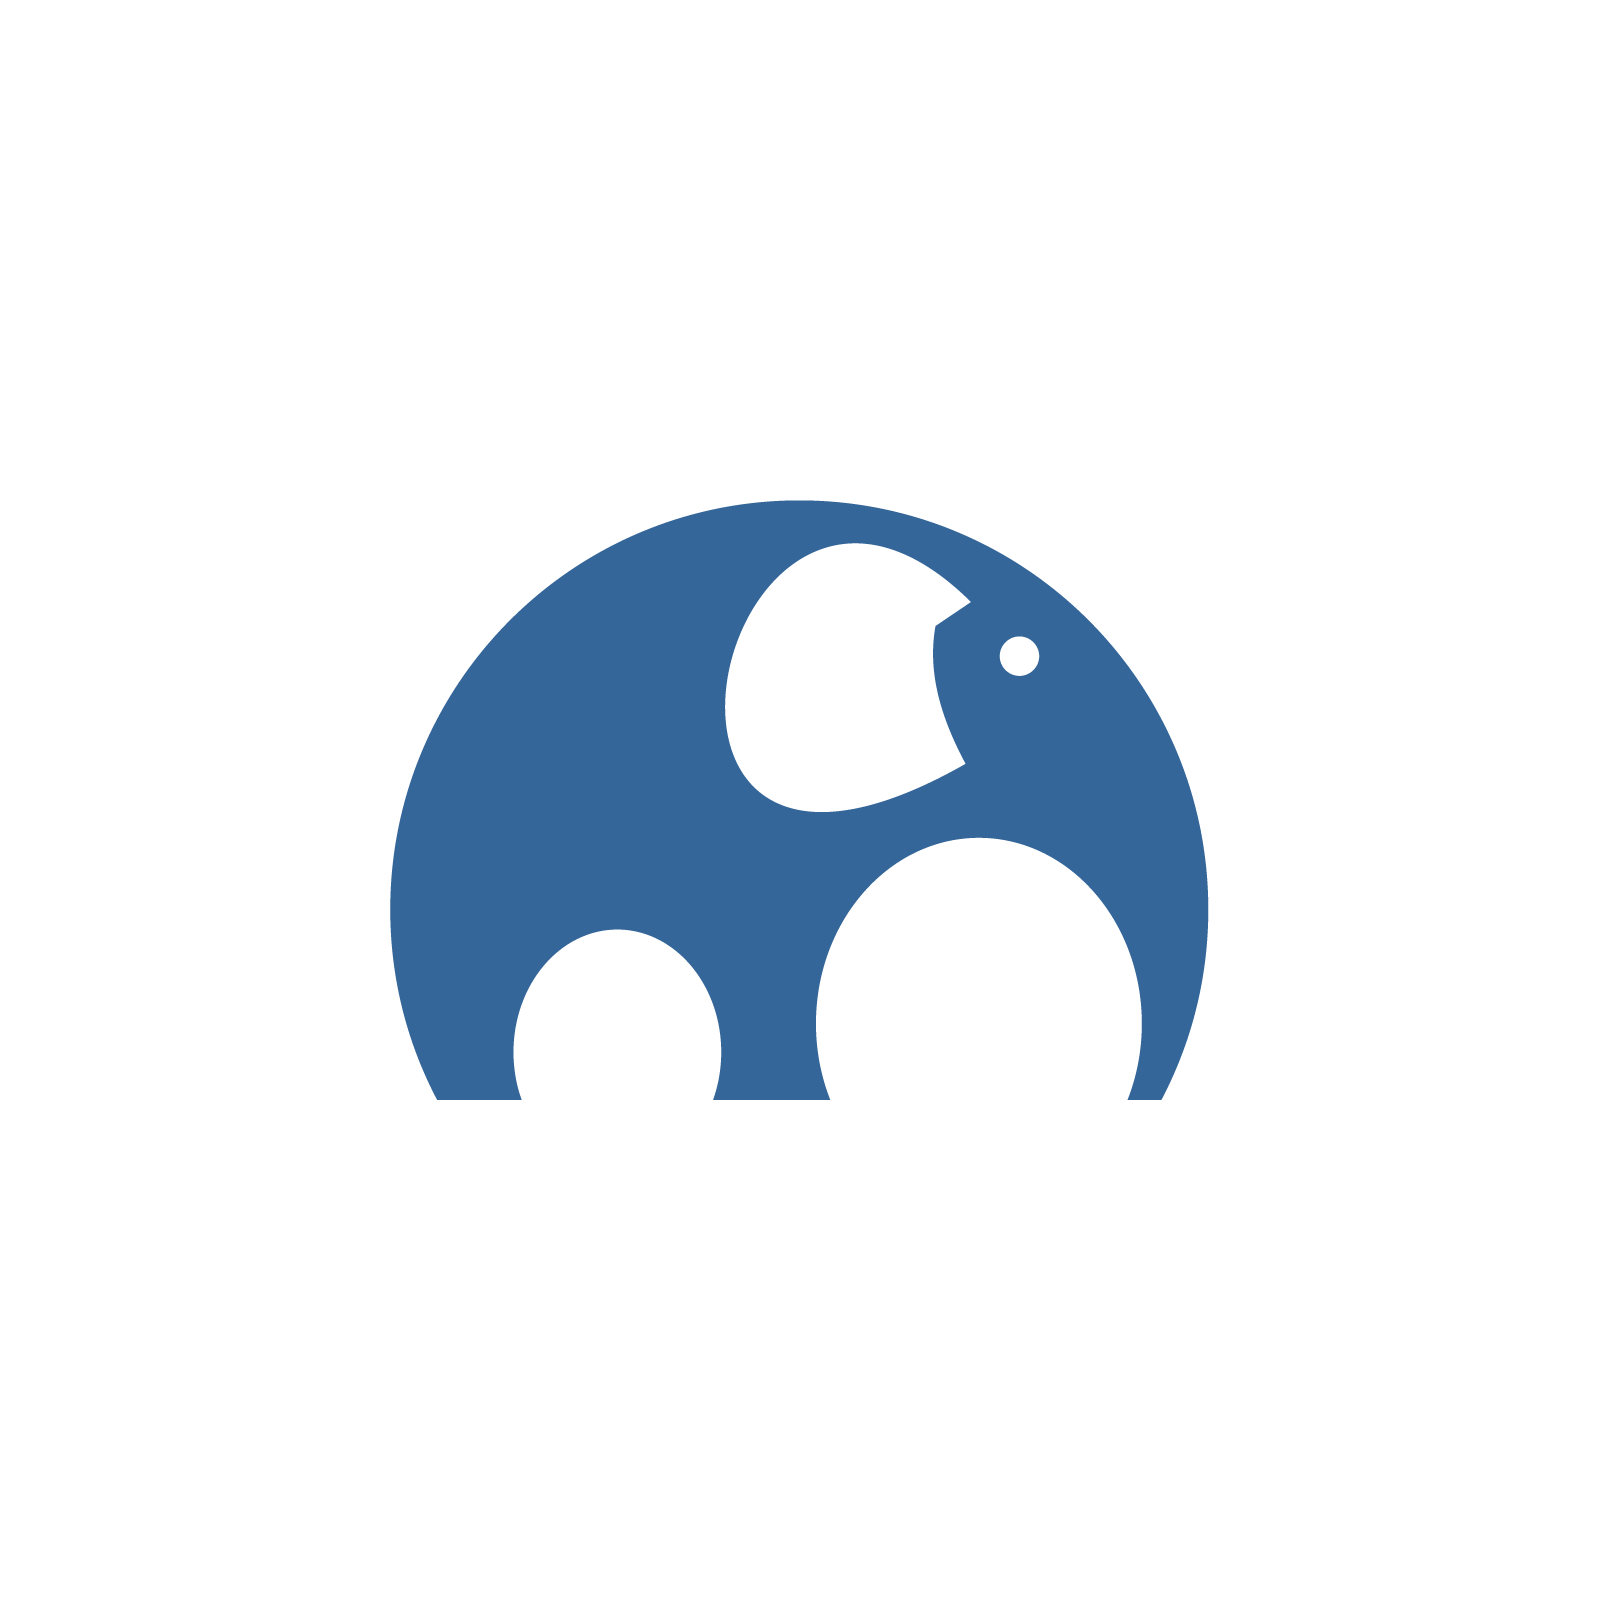 Oliphant Financial - Compassionate Recovery